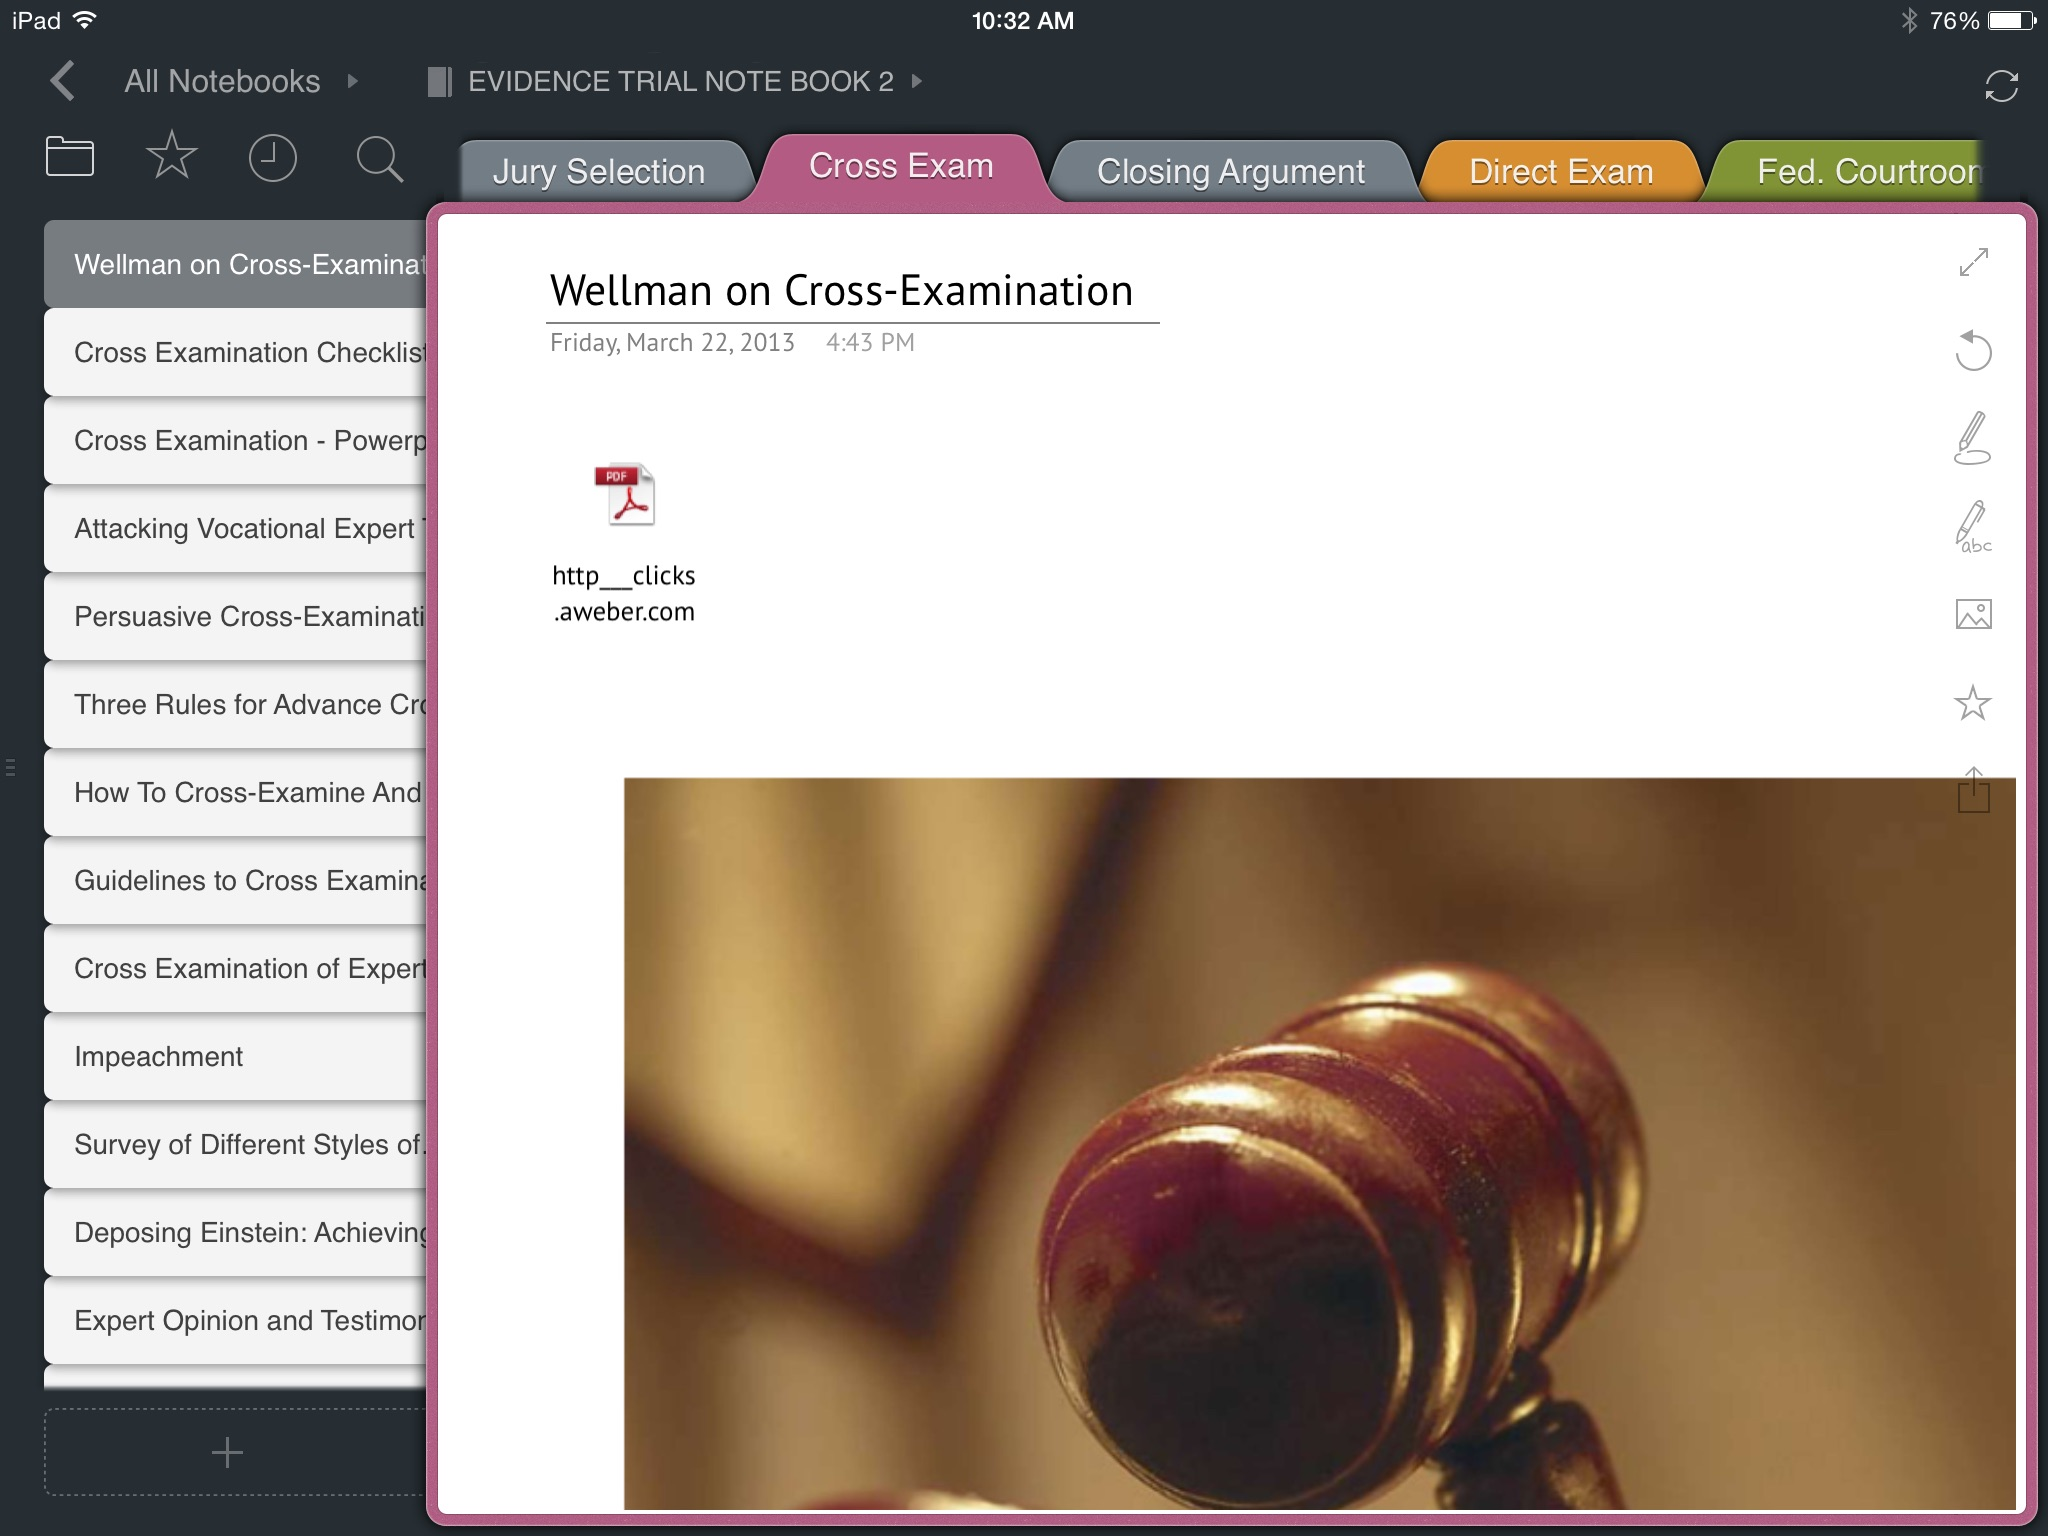 iPad App doubles as a Trial Notebook | The Barrister\'s Toolbox